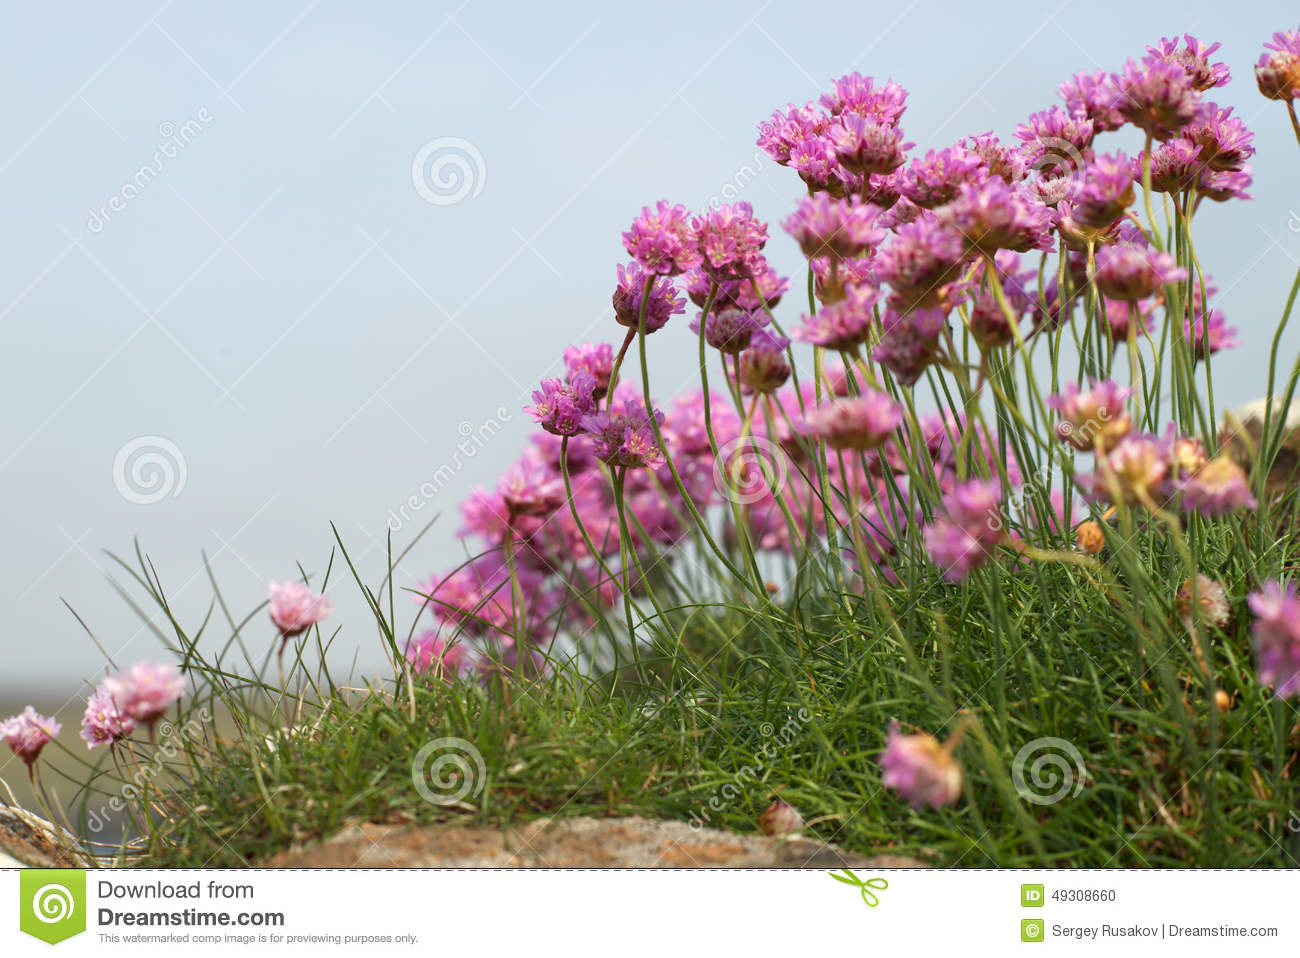 fleurs sauvages roses photo stock - image: 49308660